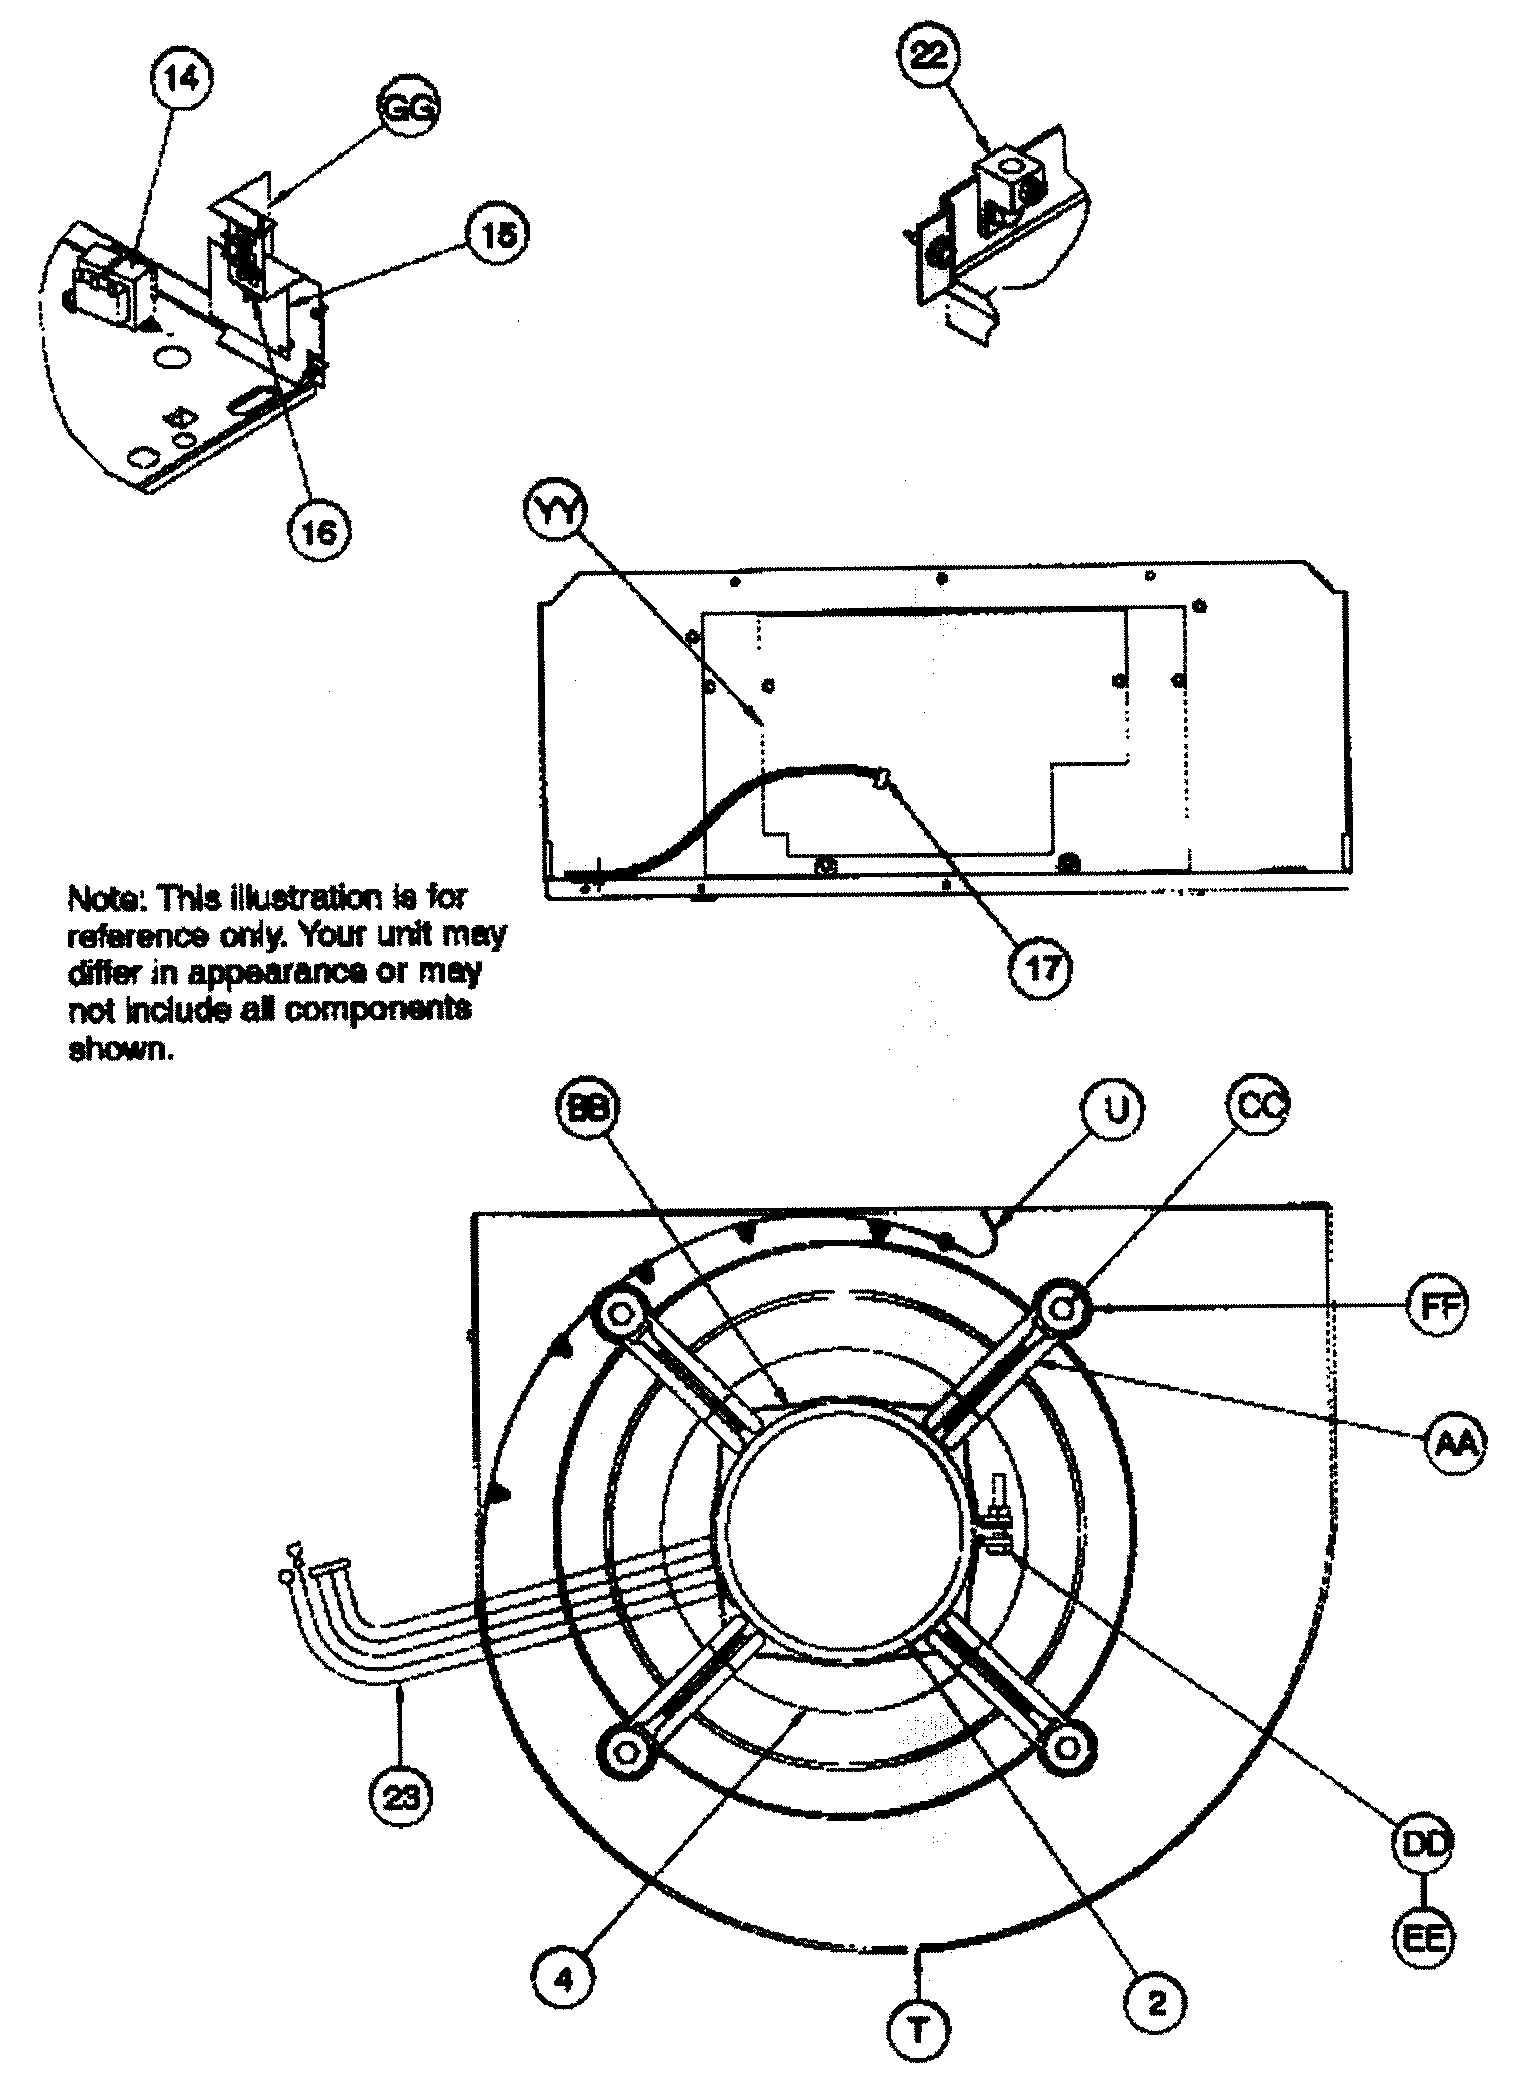 BLOWER ASSY Diagram & Parts List for Model fsm2x3600a1 Icp